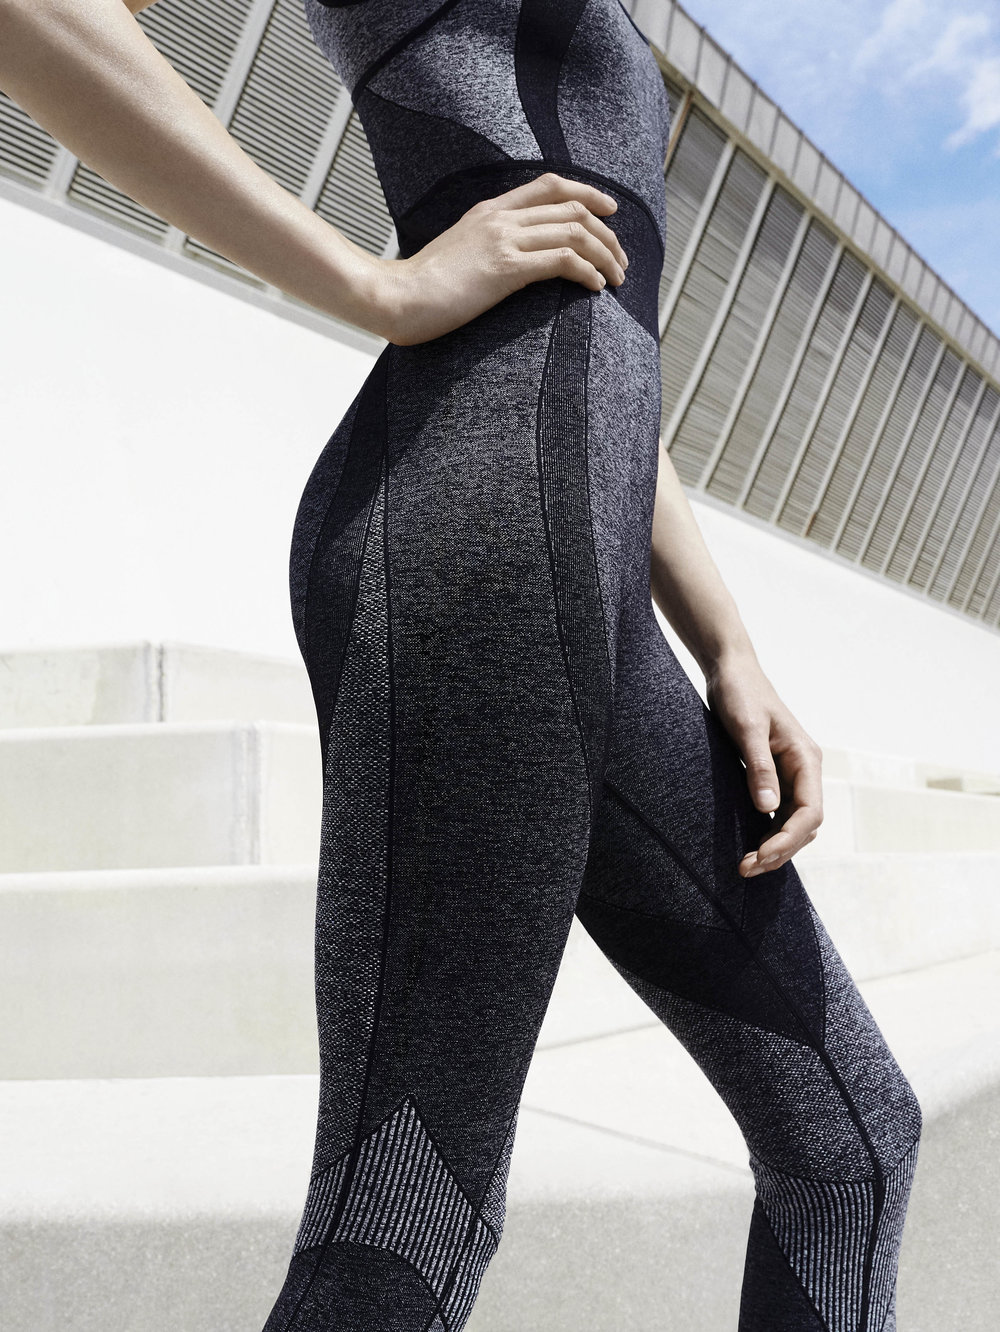 Oysho gymwear Digital Future (23).jpg